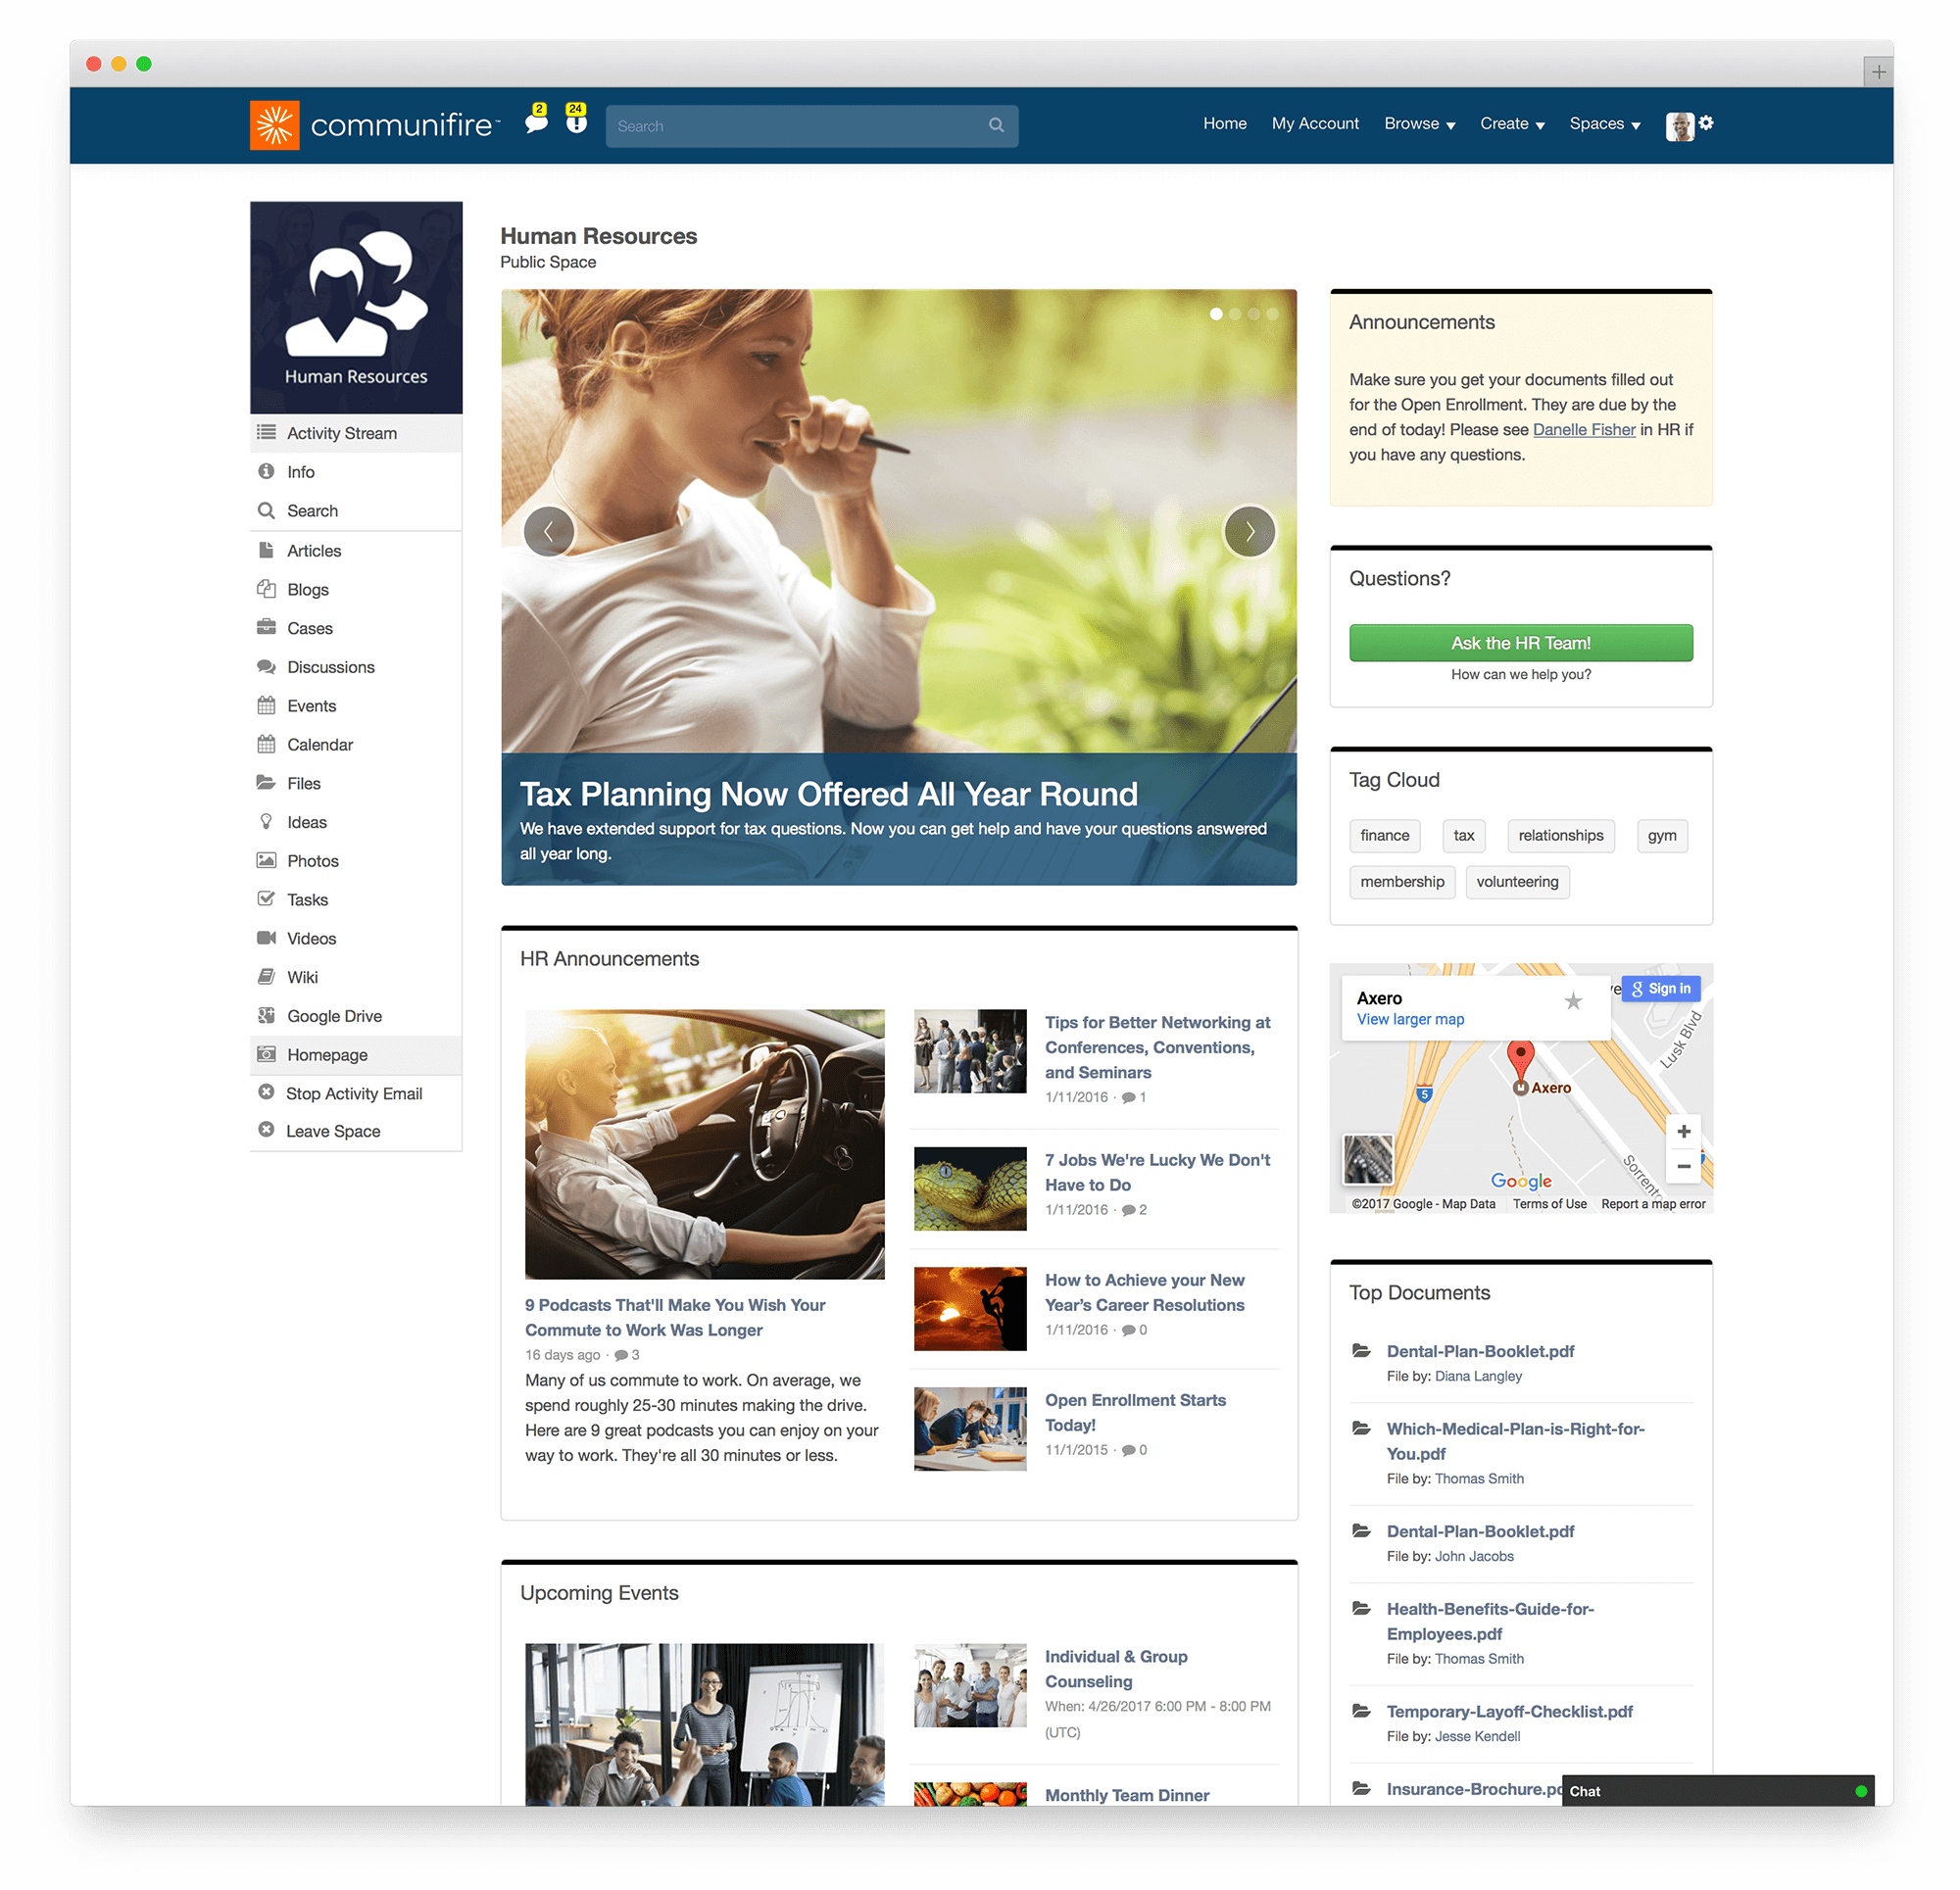 Sharepoint site design ideas - Company Intranet Ideas Intranet Navigation